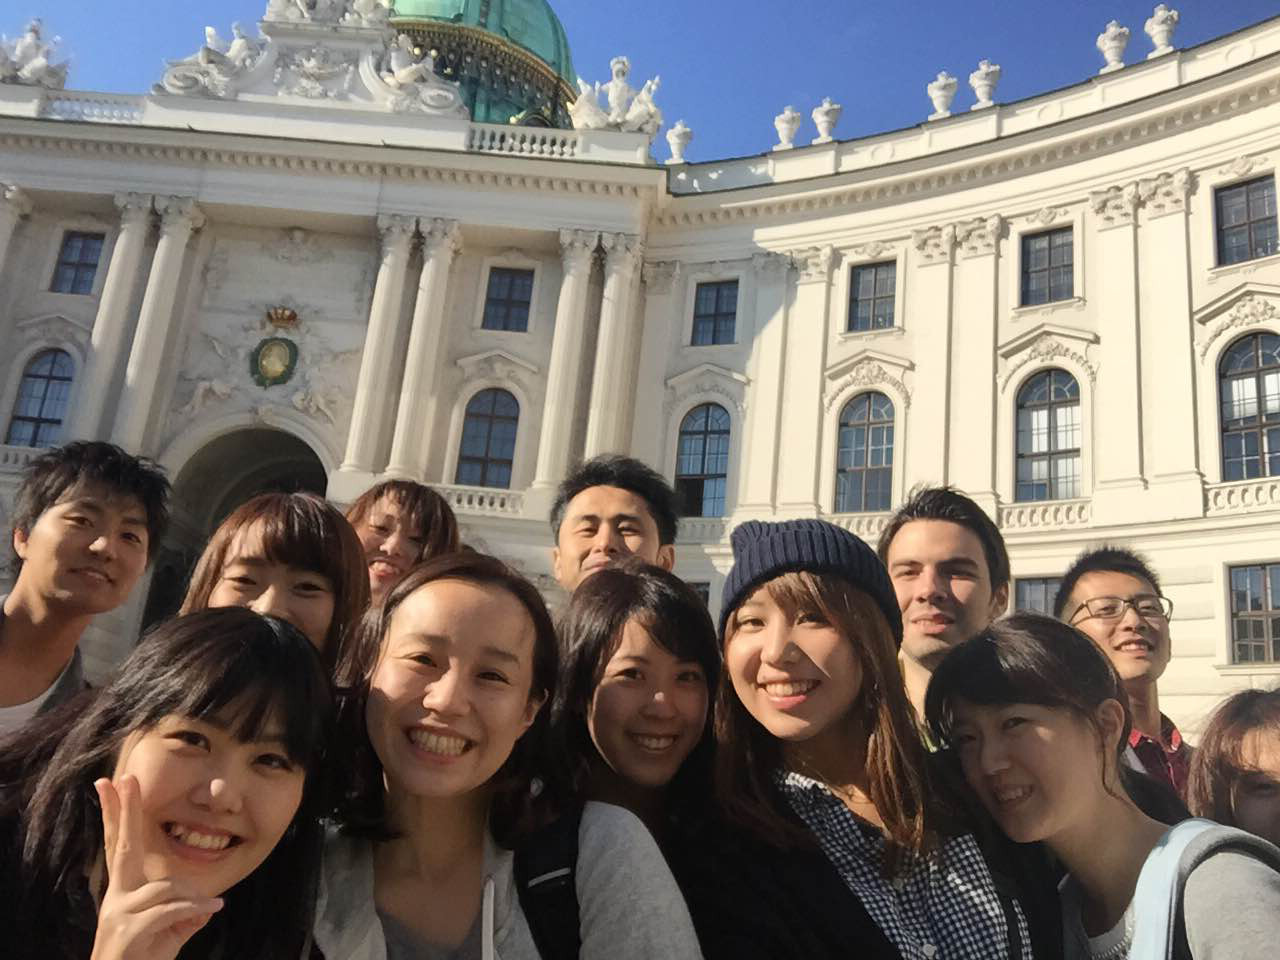 Japanese youth in Vienna, in the background is a part of the Vienna Hofburg visible.